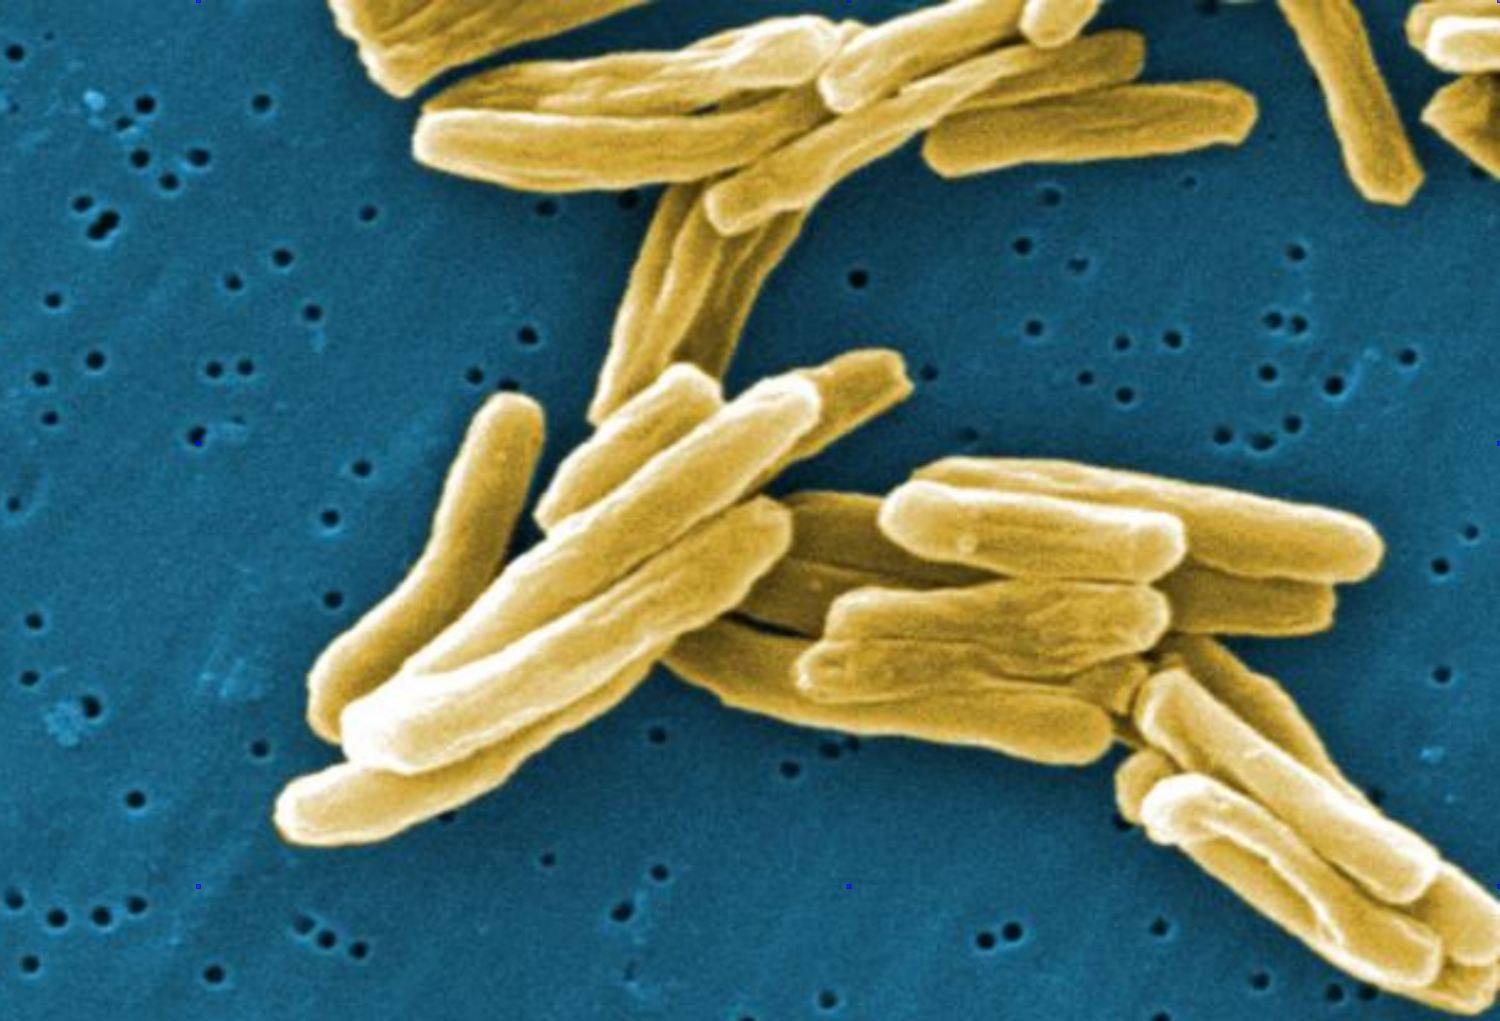 This scanning electron micrograph (SEM) depicts a number of Gram-positive Mycobacterium tuberculosis bacteria. TB bacteria become active, and begin to multiply, if the immune system can't stop them from growing. The bacteria attack the body and destroy tissue. If in the lungs, the bacteria can actually create a hole in the lung tissue.